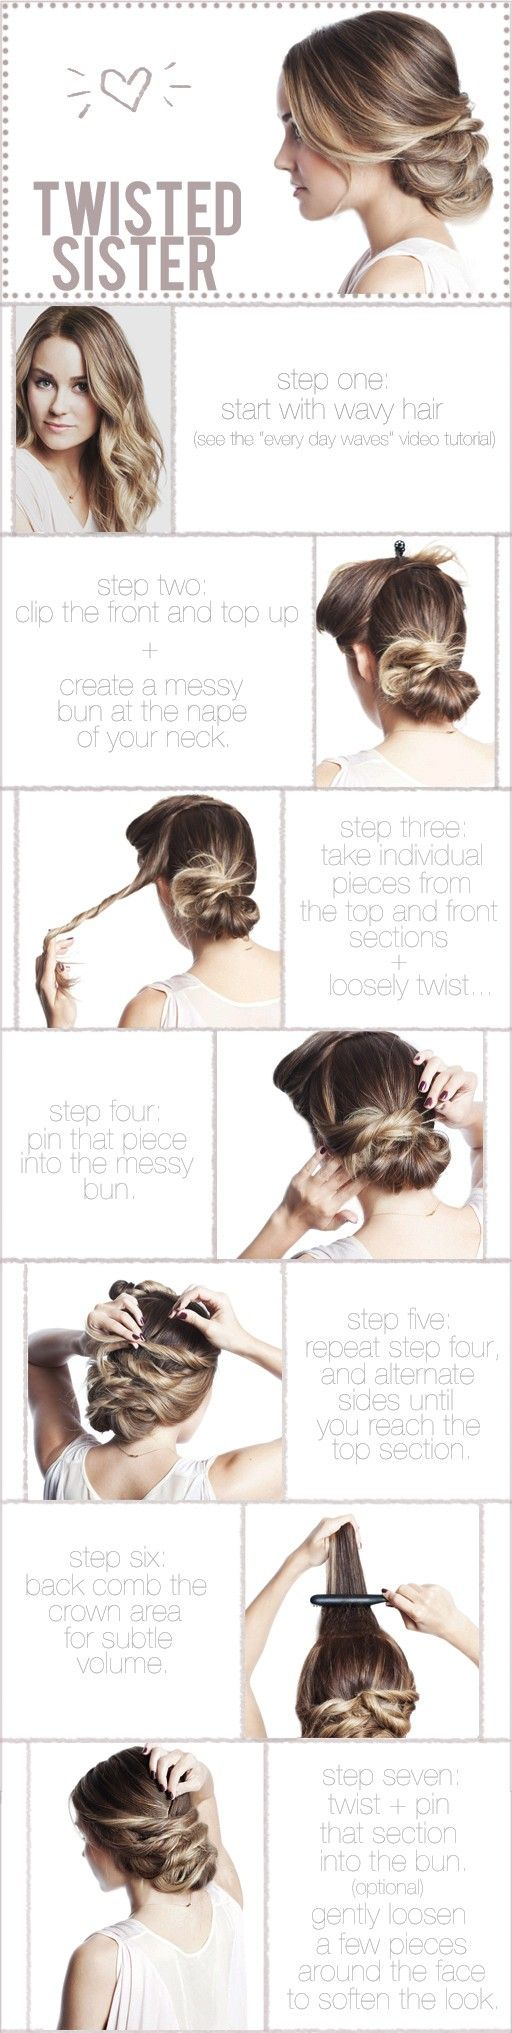 Pin by amy nevoli on my style pinboard pinterest hair styles